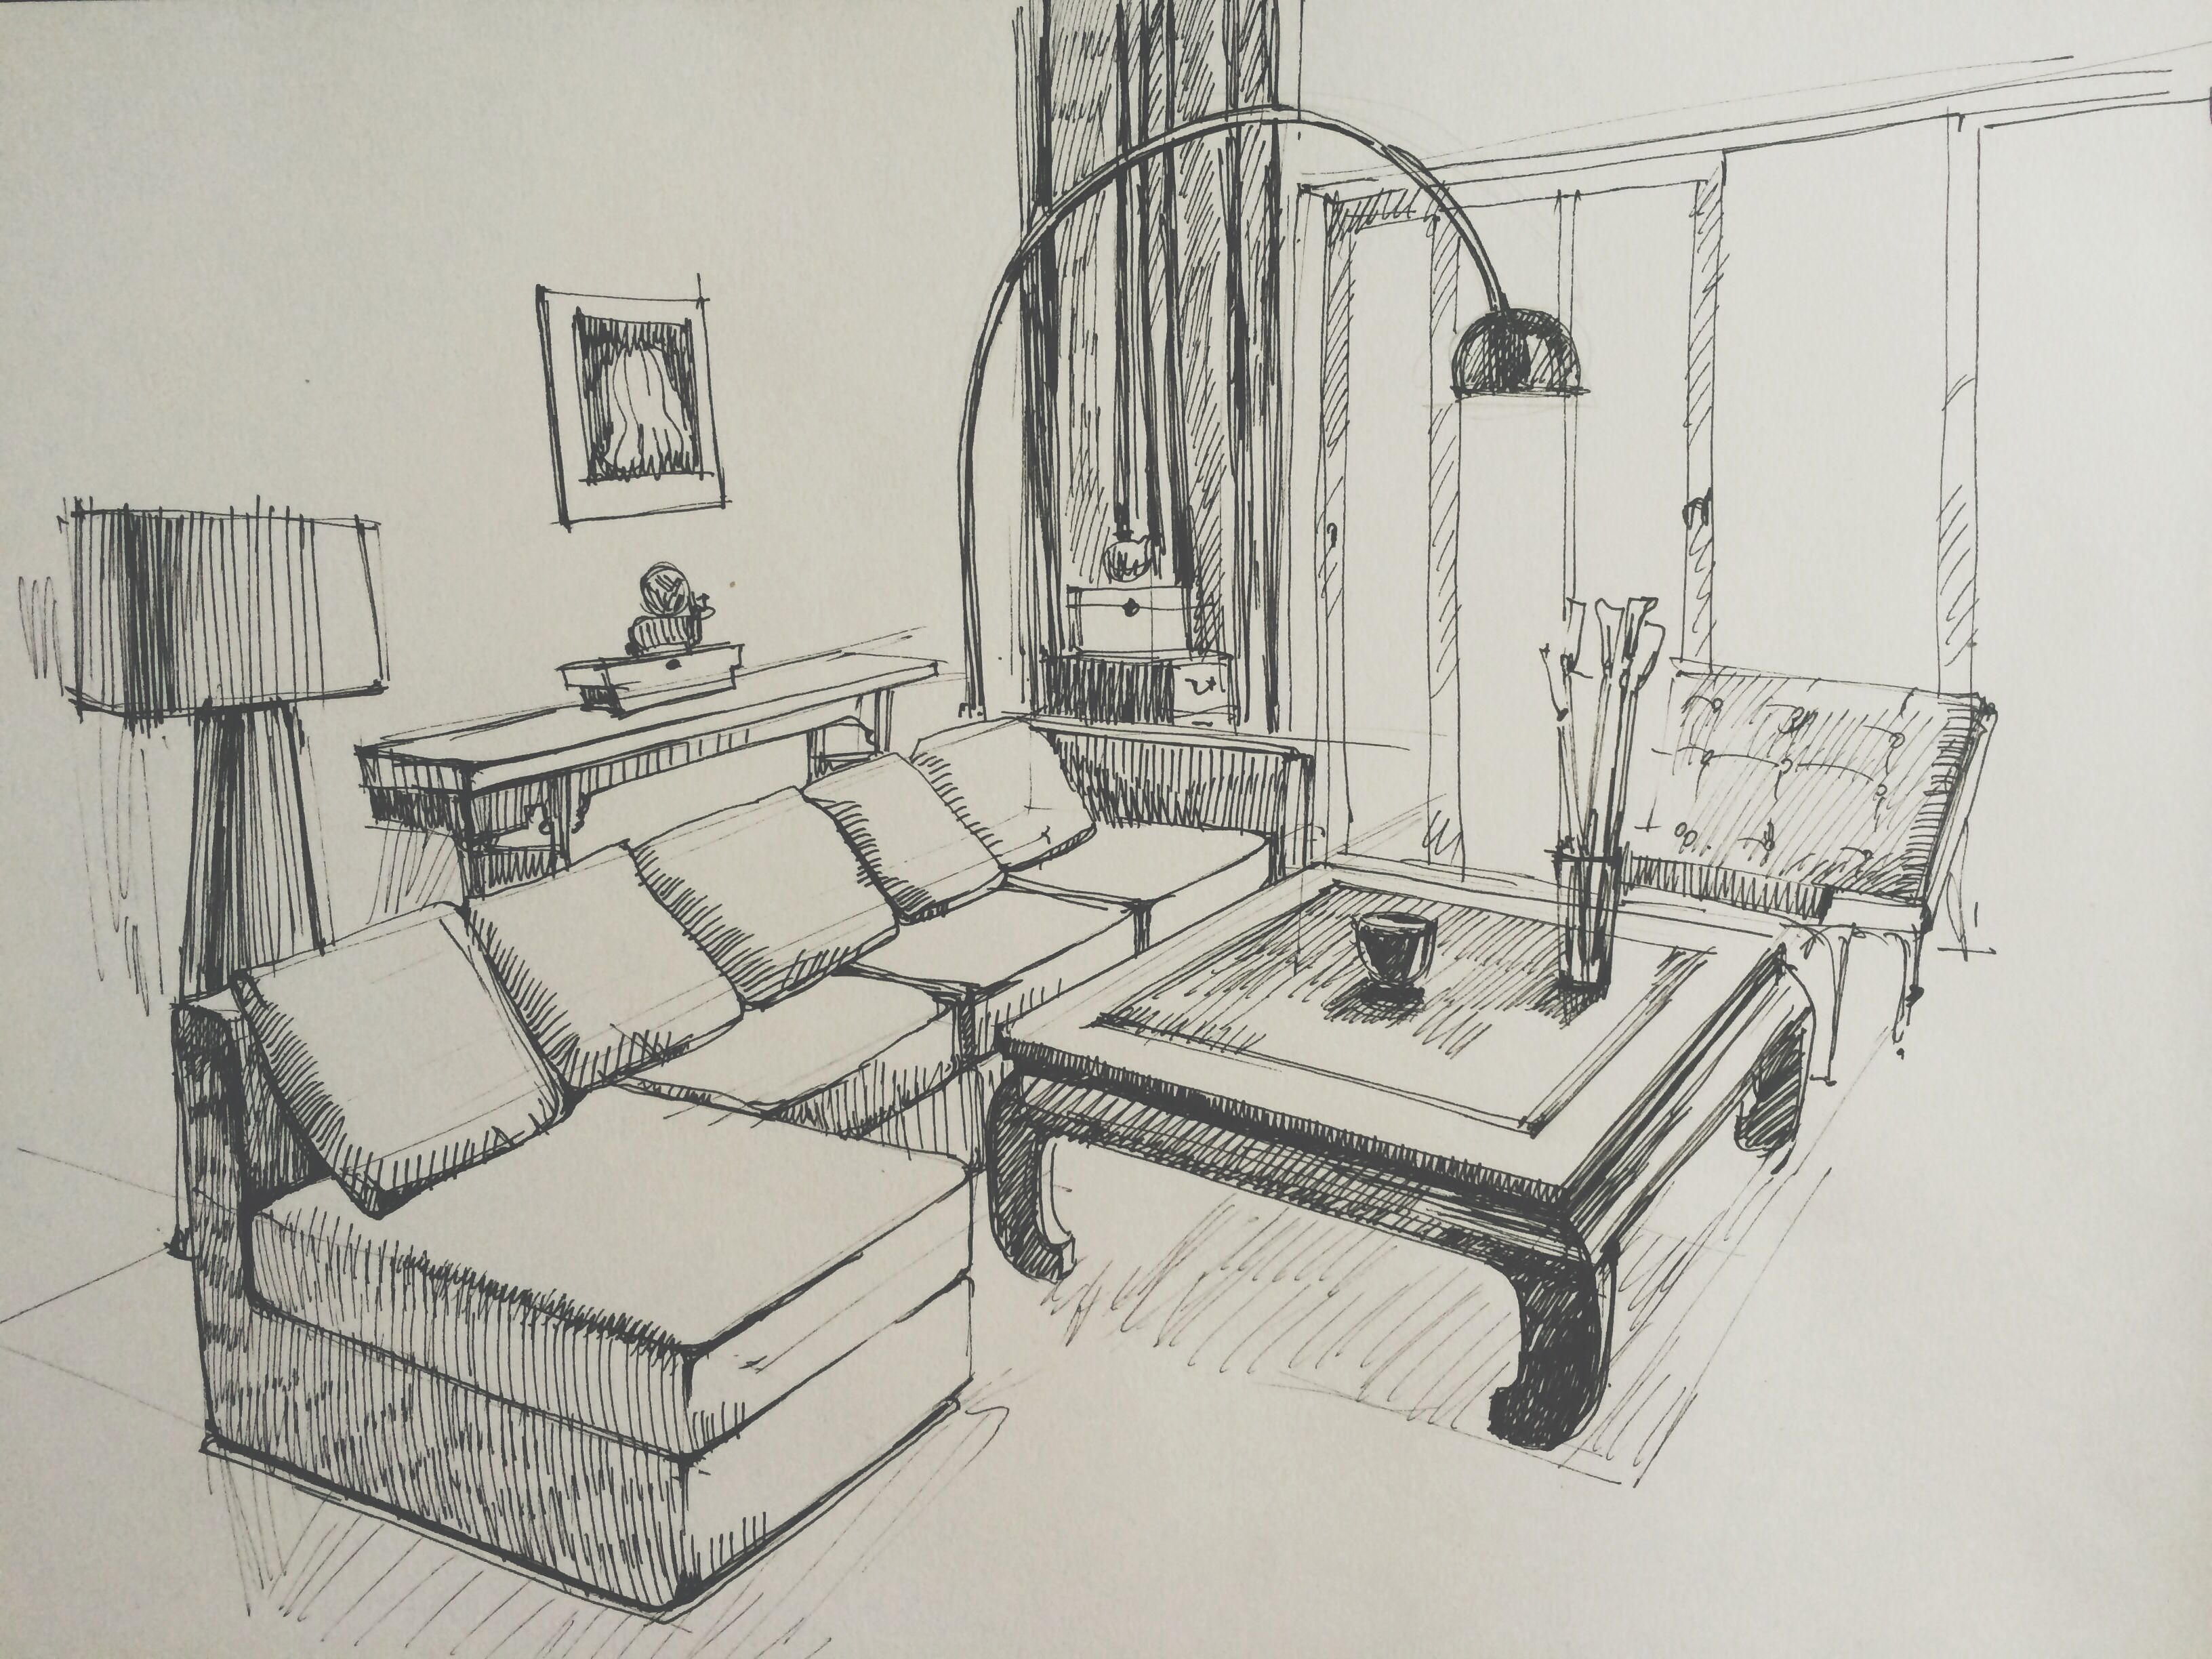 Living room sketch  Interior sketches in 2019  Interior design sketches Sketches Drawings